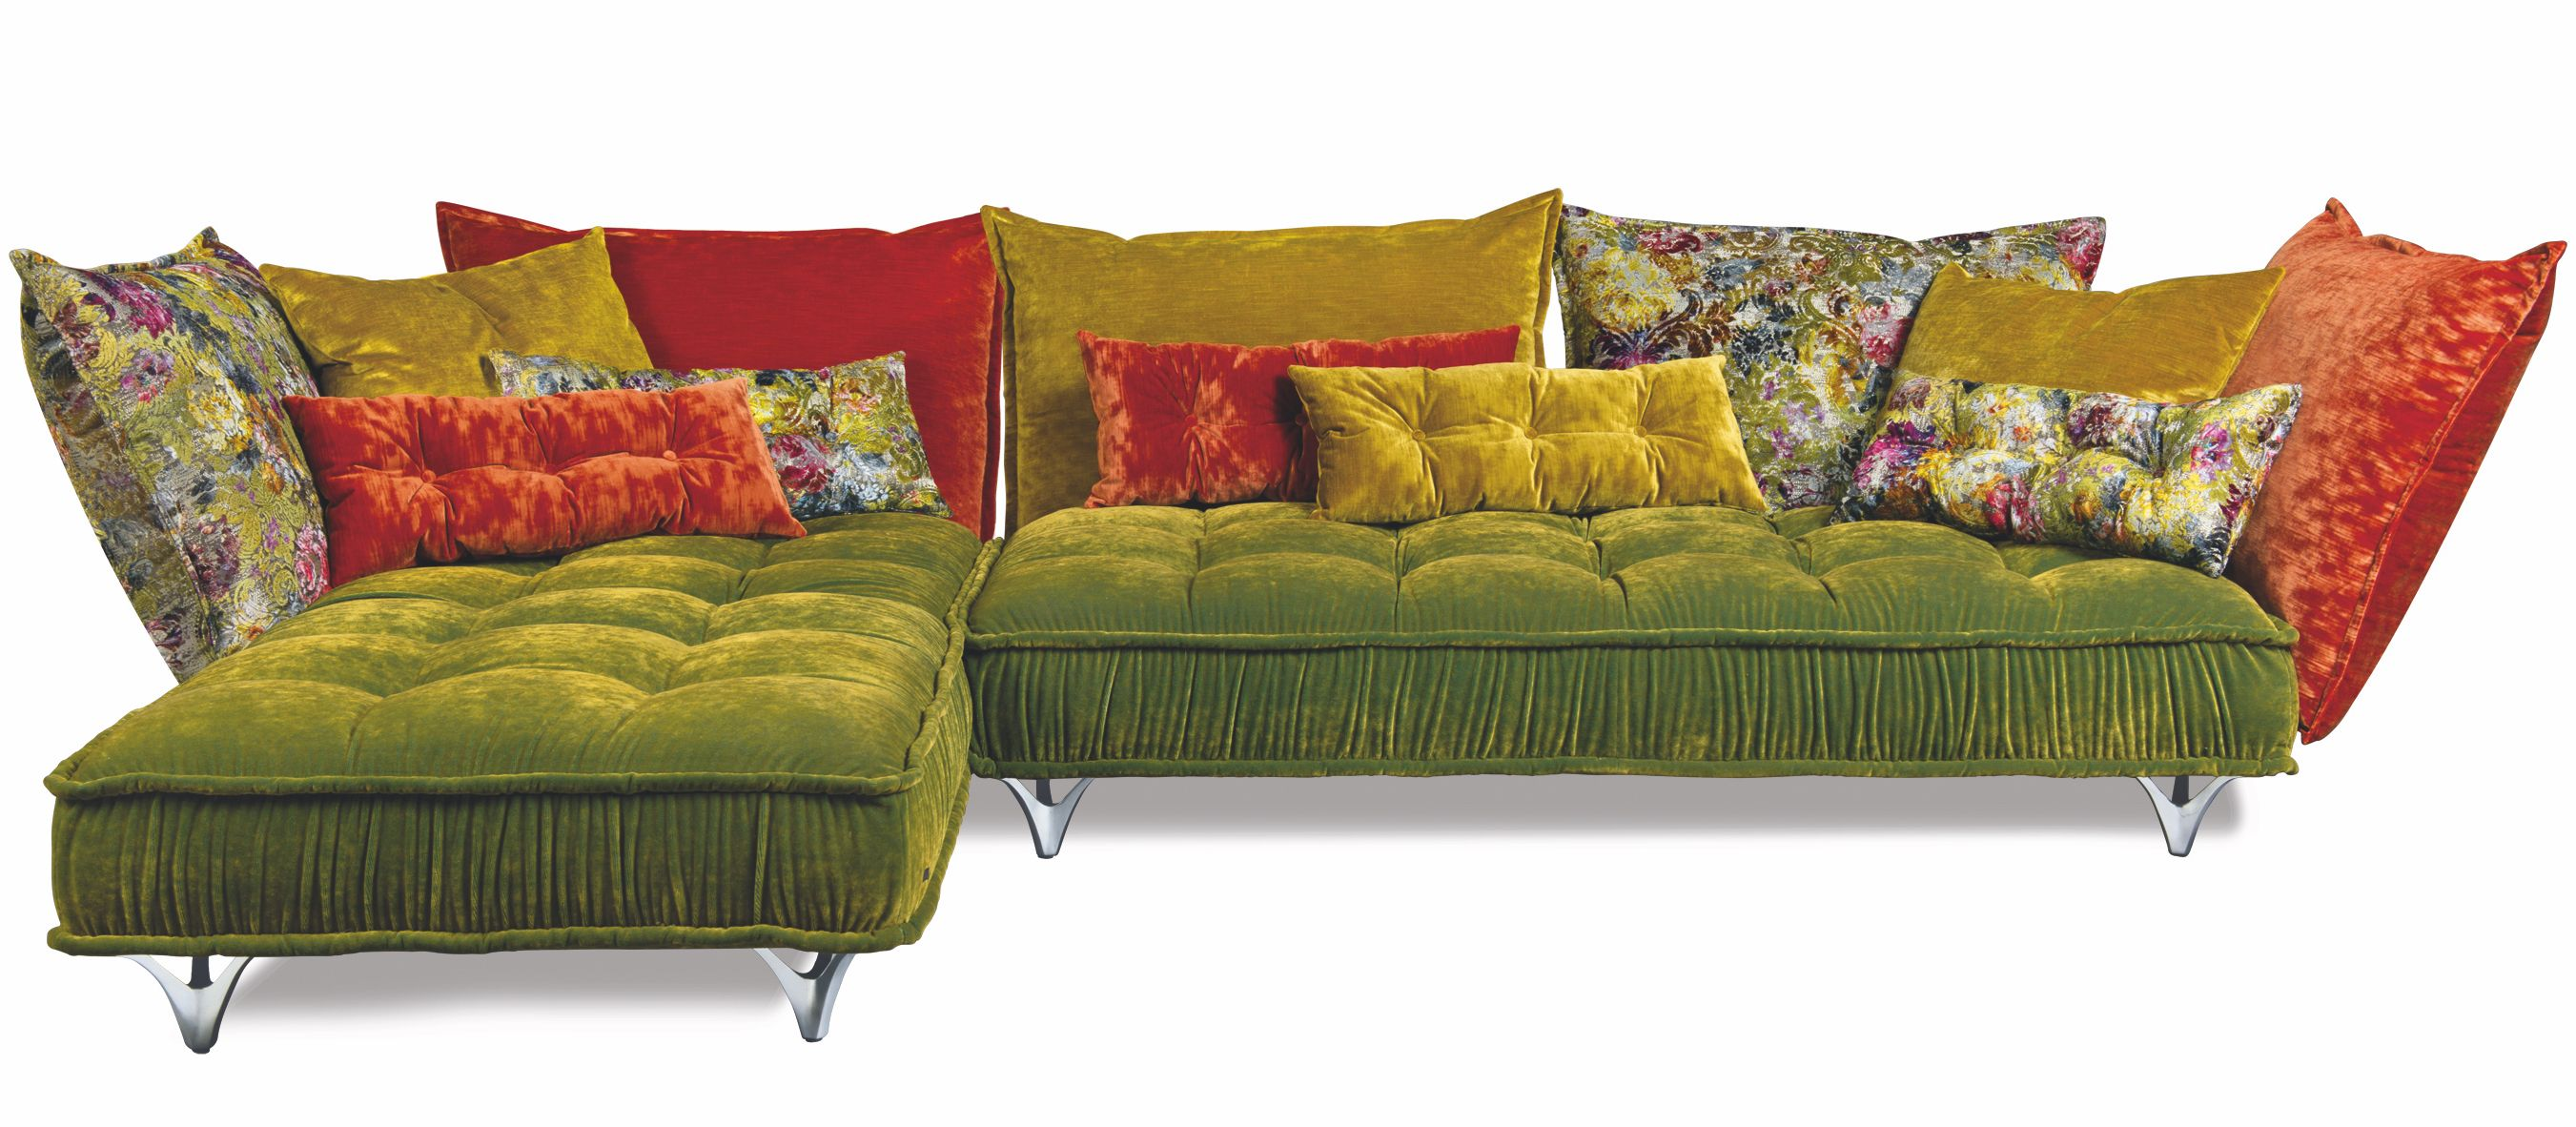 Brez Sessel Ecksofa Ohlinda 342x217 Set 3 To My Rock Home Sofa Furniture